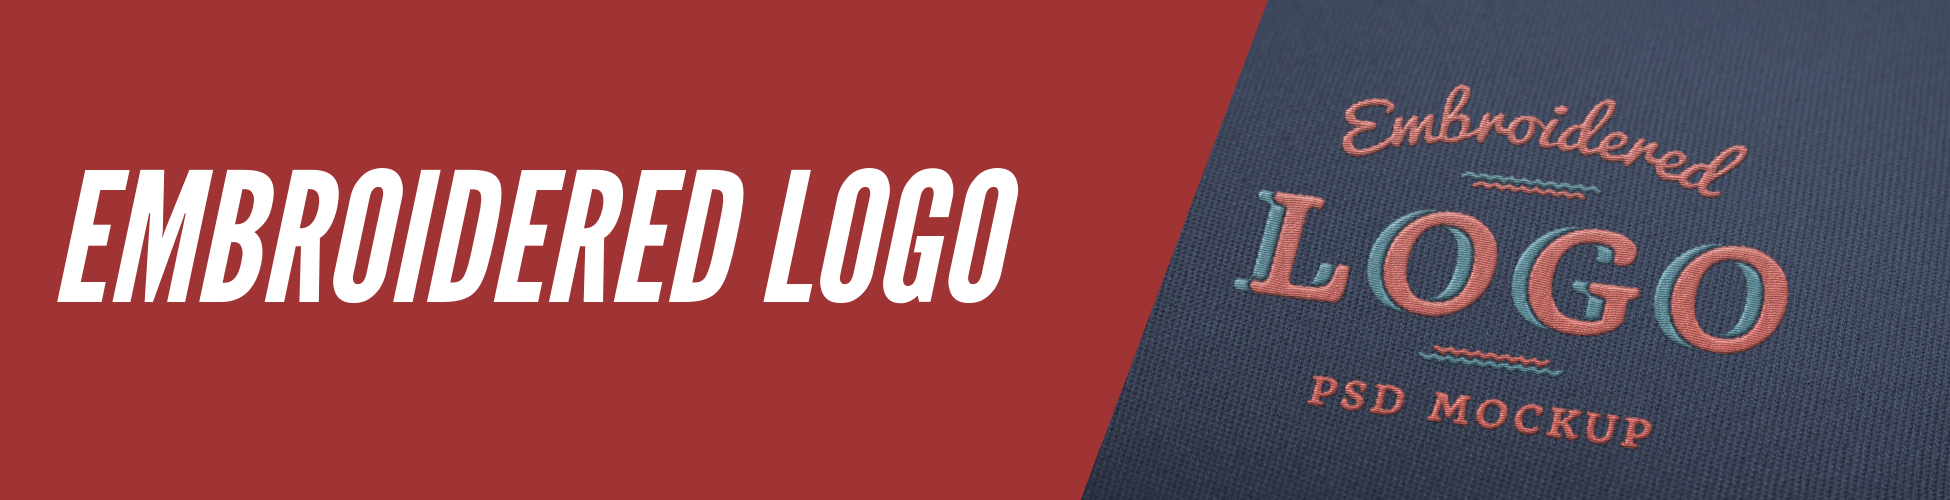 embroidered-logo-banner.png